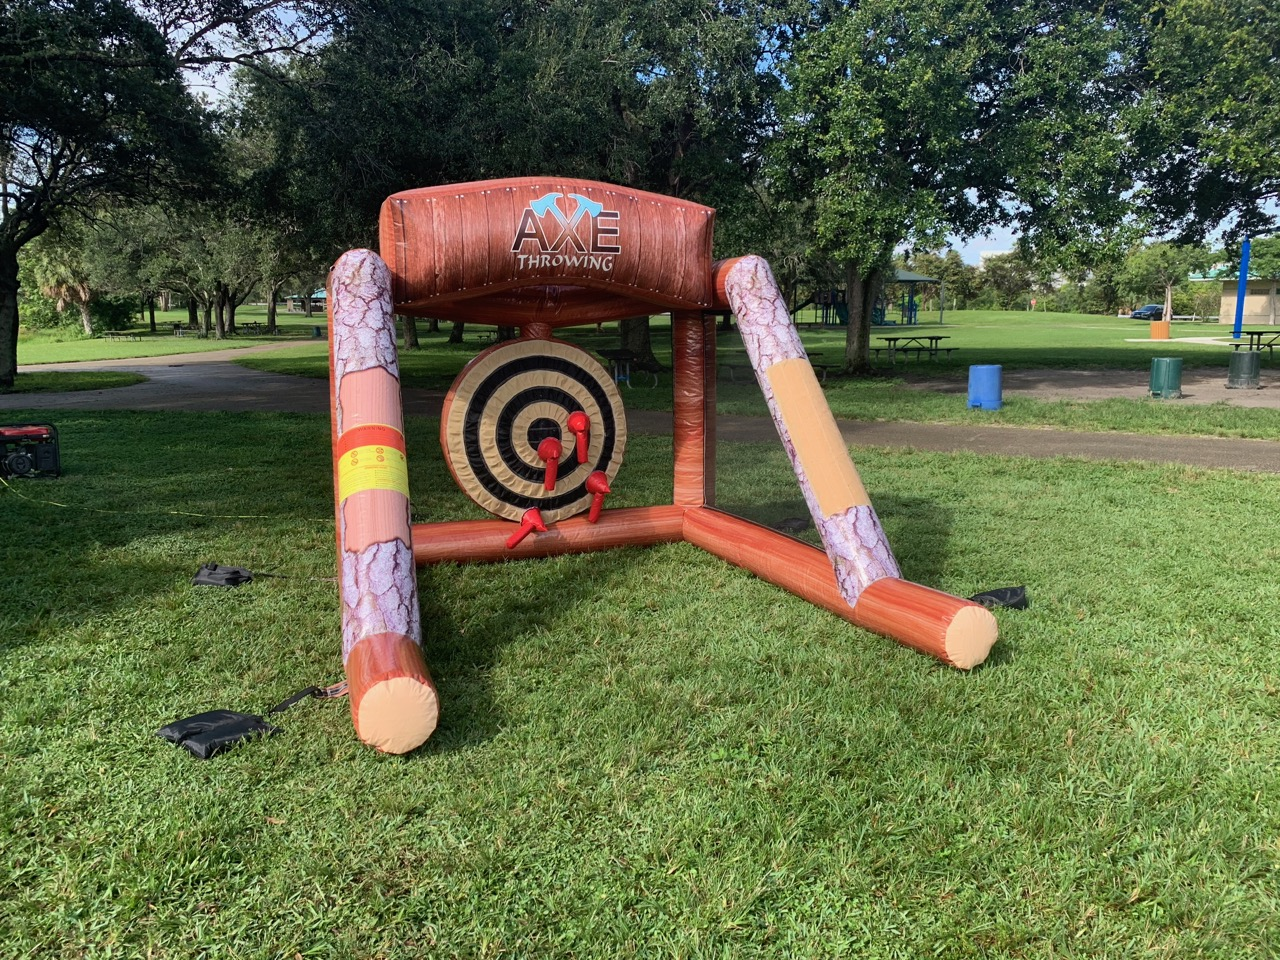 Axe Throwing Inflatable Florida - Corpor